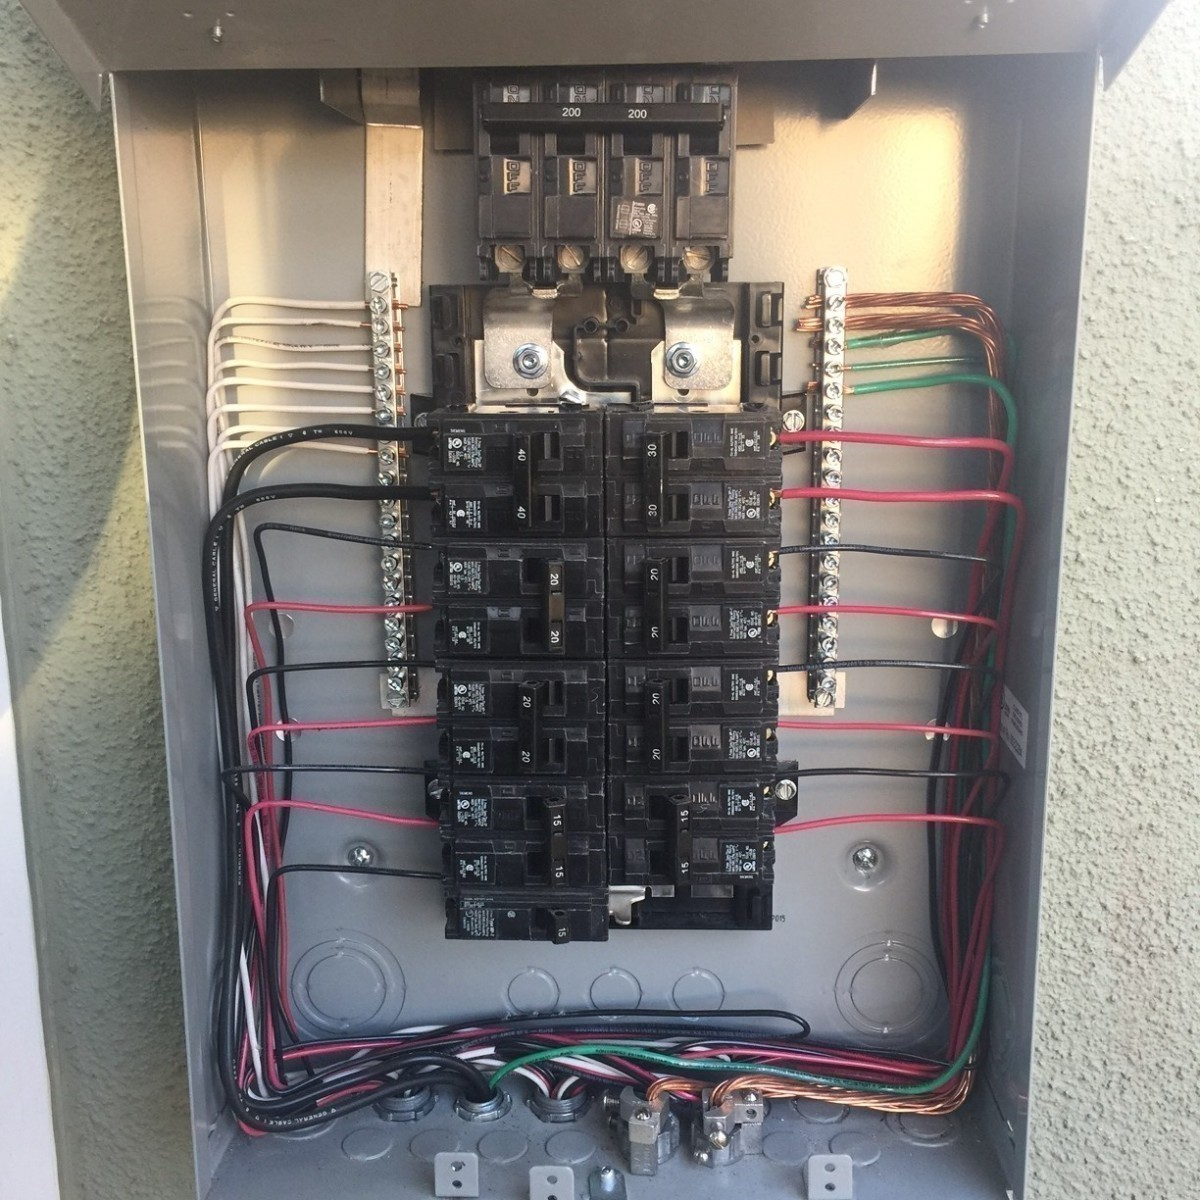 Electrical Wiring And Circuit Breakers